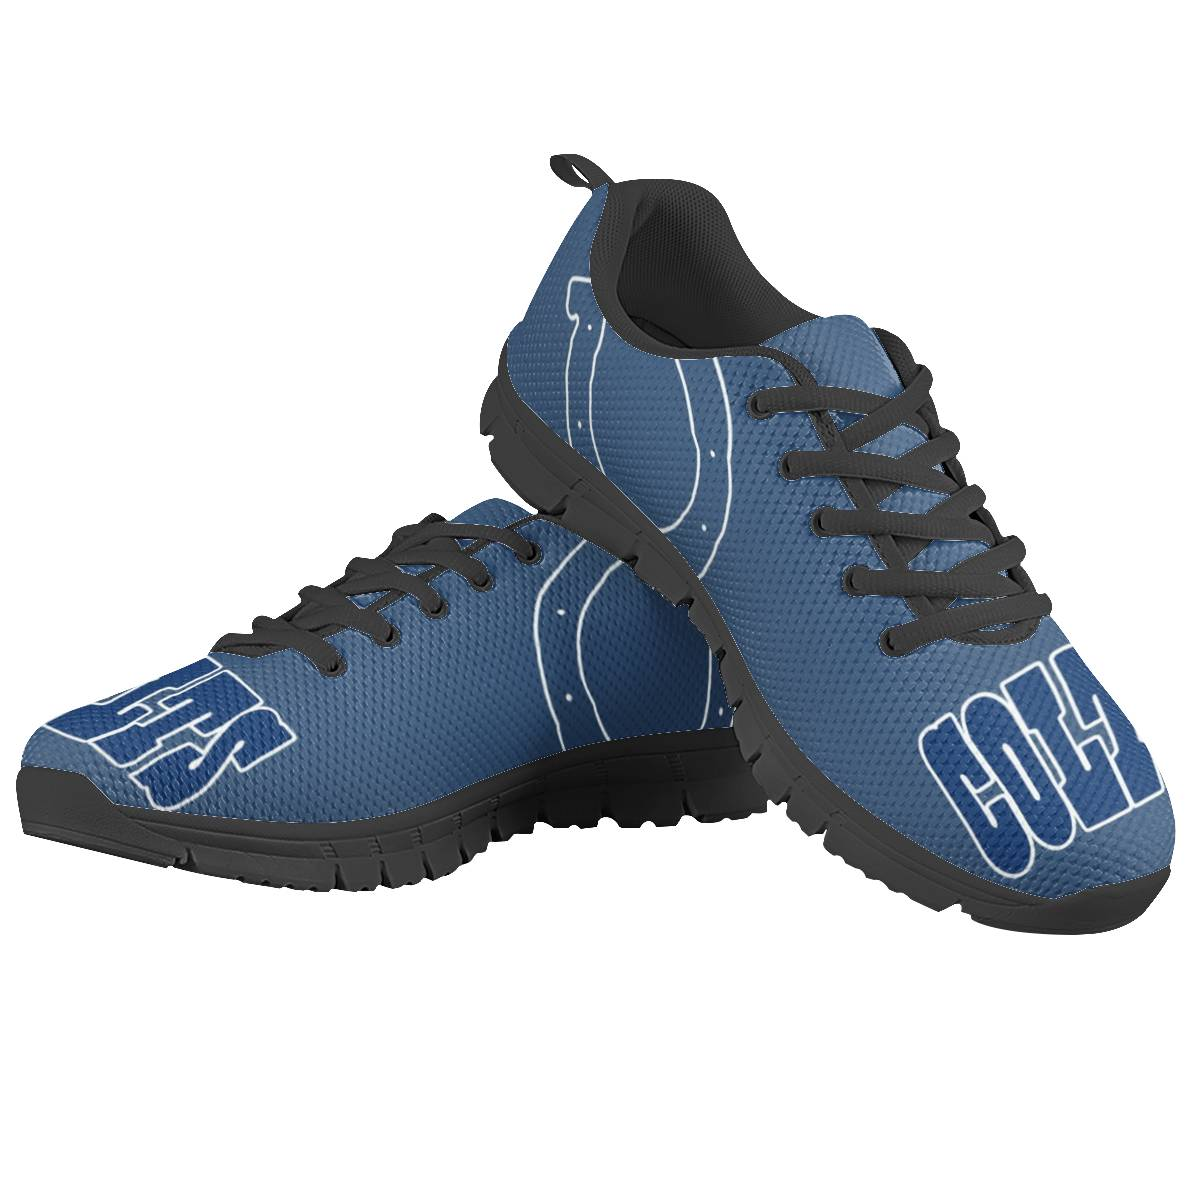 Women's Indianapolis Colts AQ Running Shoes 003